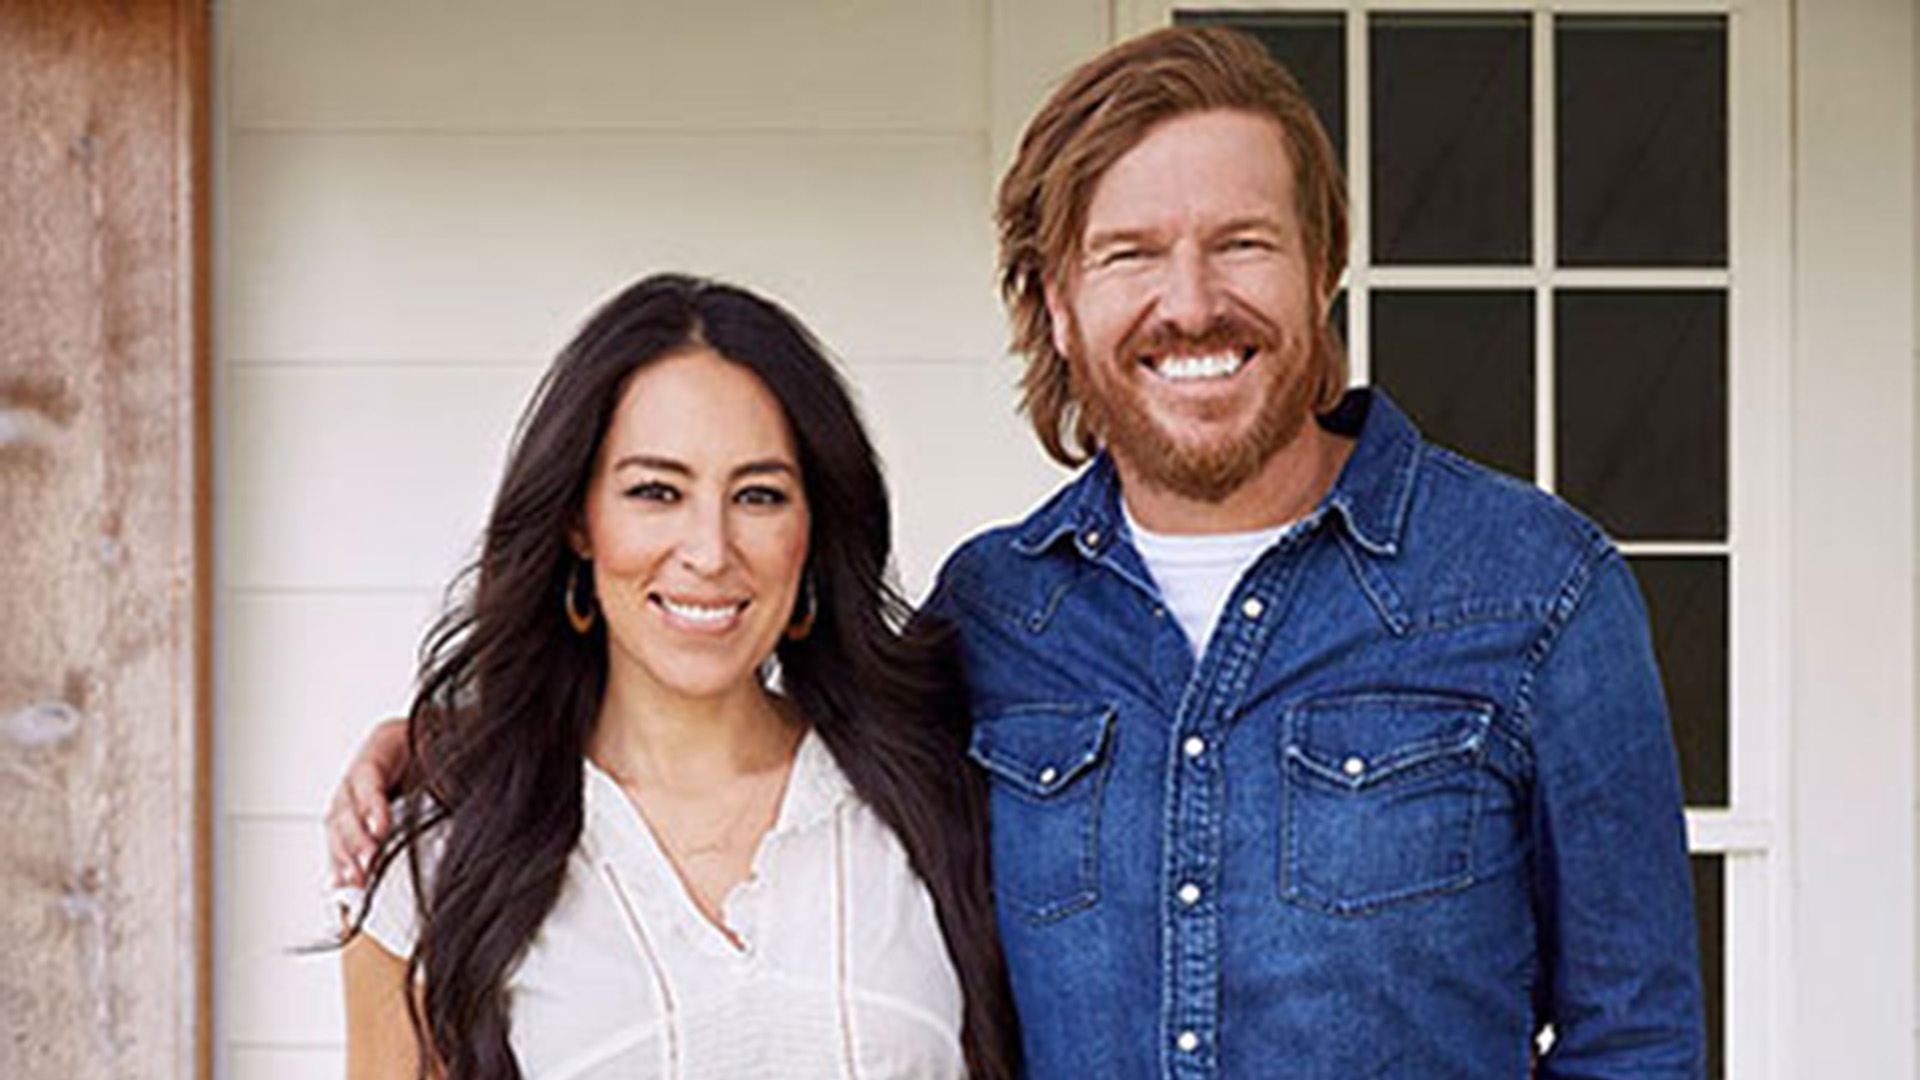 Chip, Joanna Gaines Partner With Target On Magnolia Brand